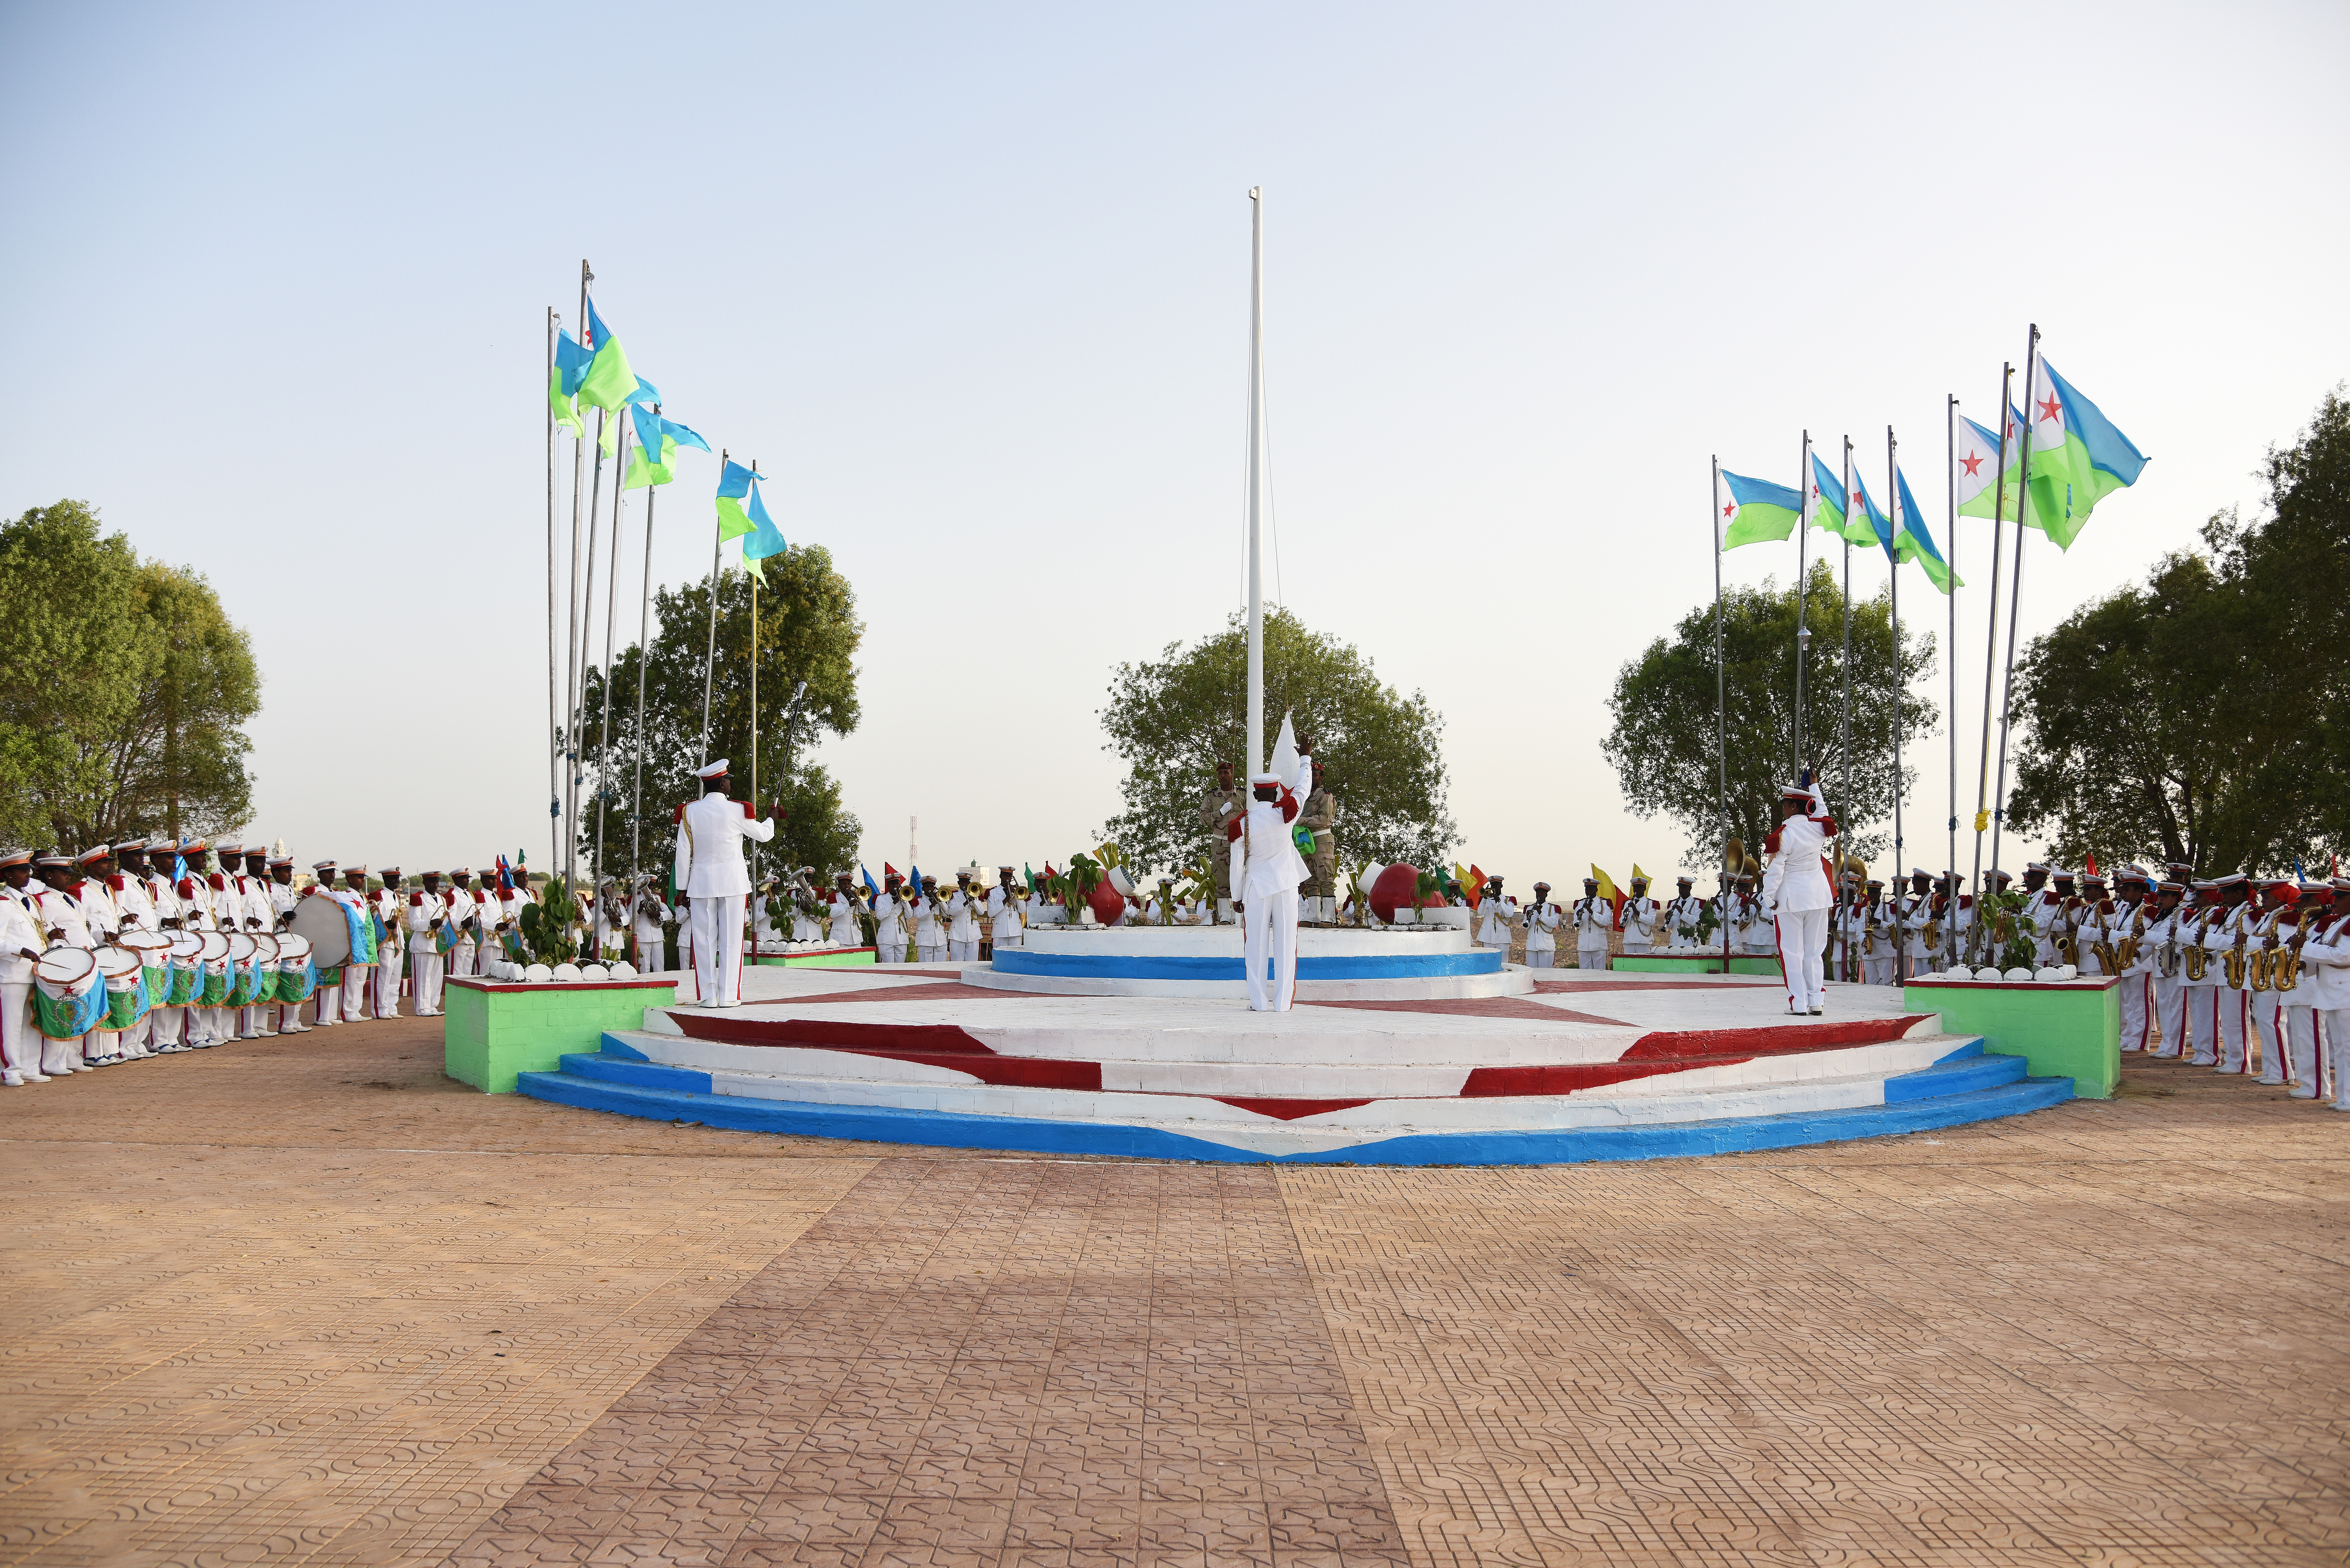 A Djiboutian marching band plays festive music during a Djibouti independence day celebration June 27, 2015, marking 38 years since it became a sovereign nation.  The military parade included a marching band and troops showcasing its different military equipment.  (U.S. Air Force photo by Staff Sgt. Maria Bowman)